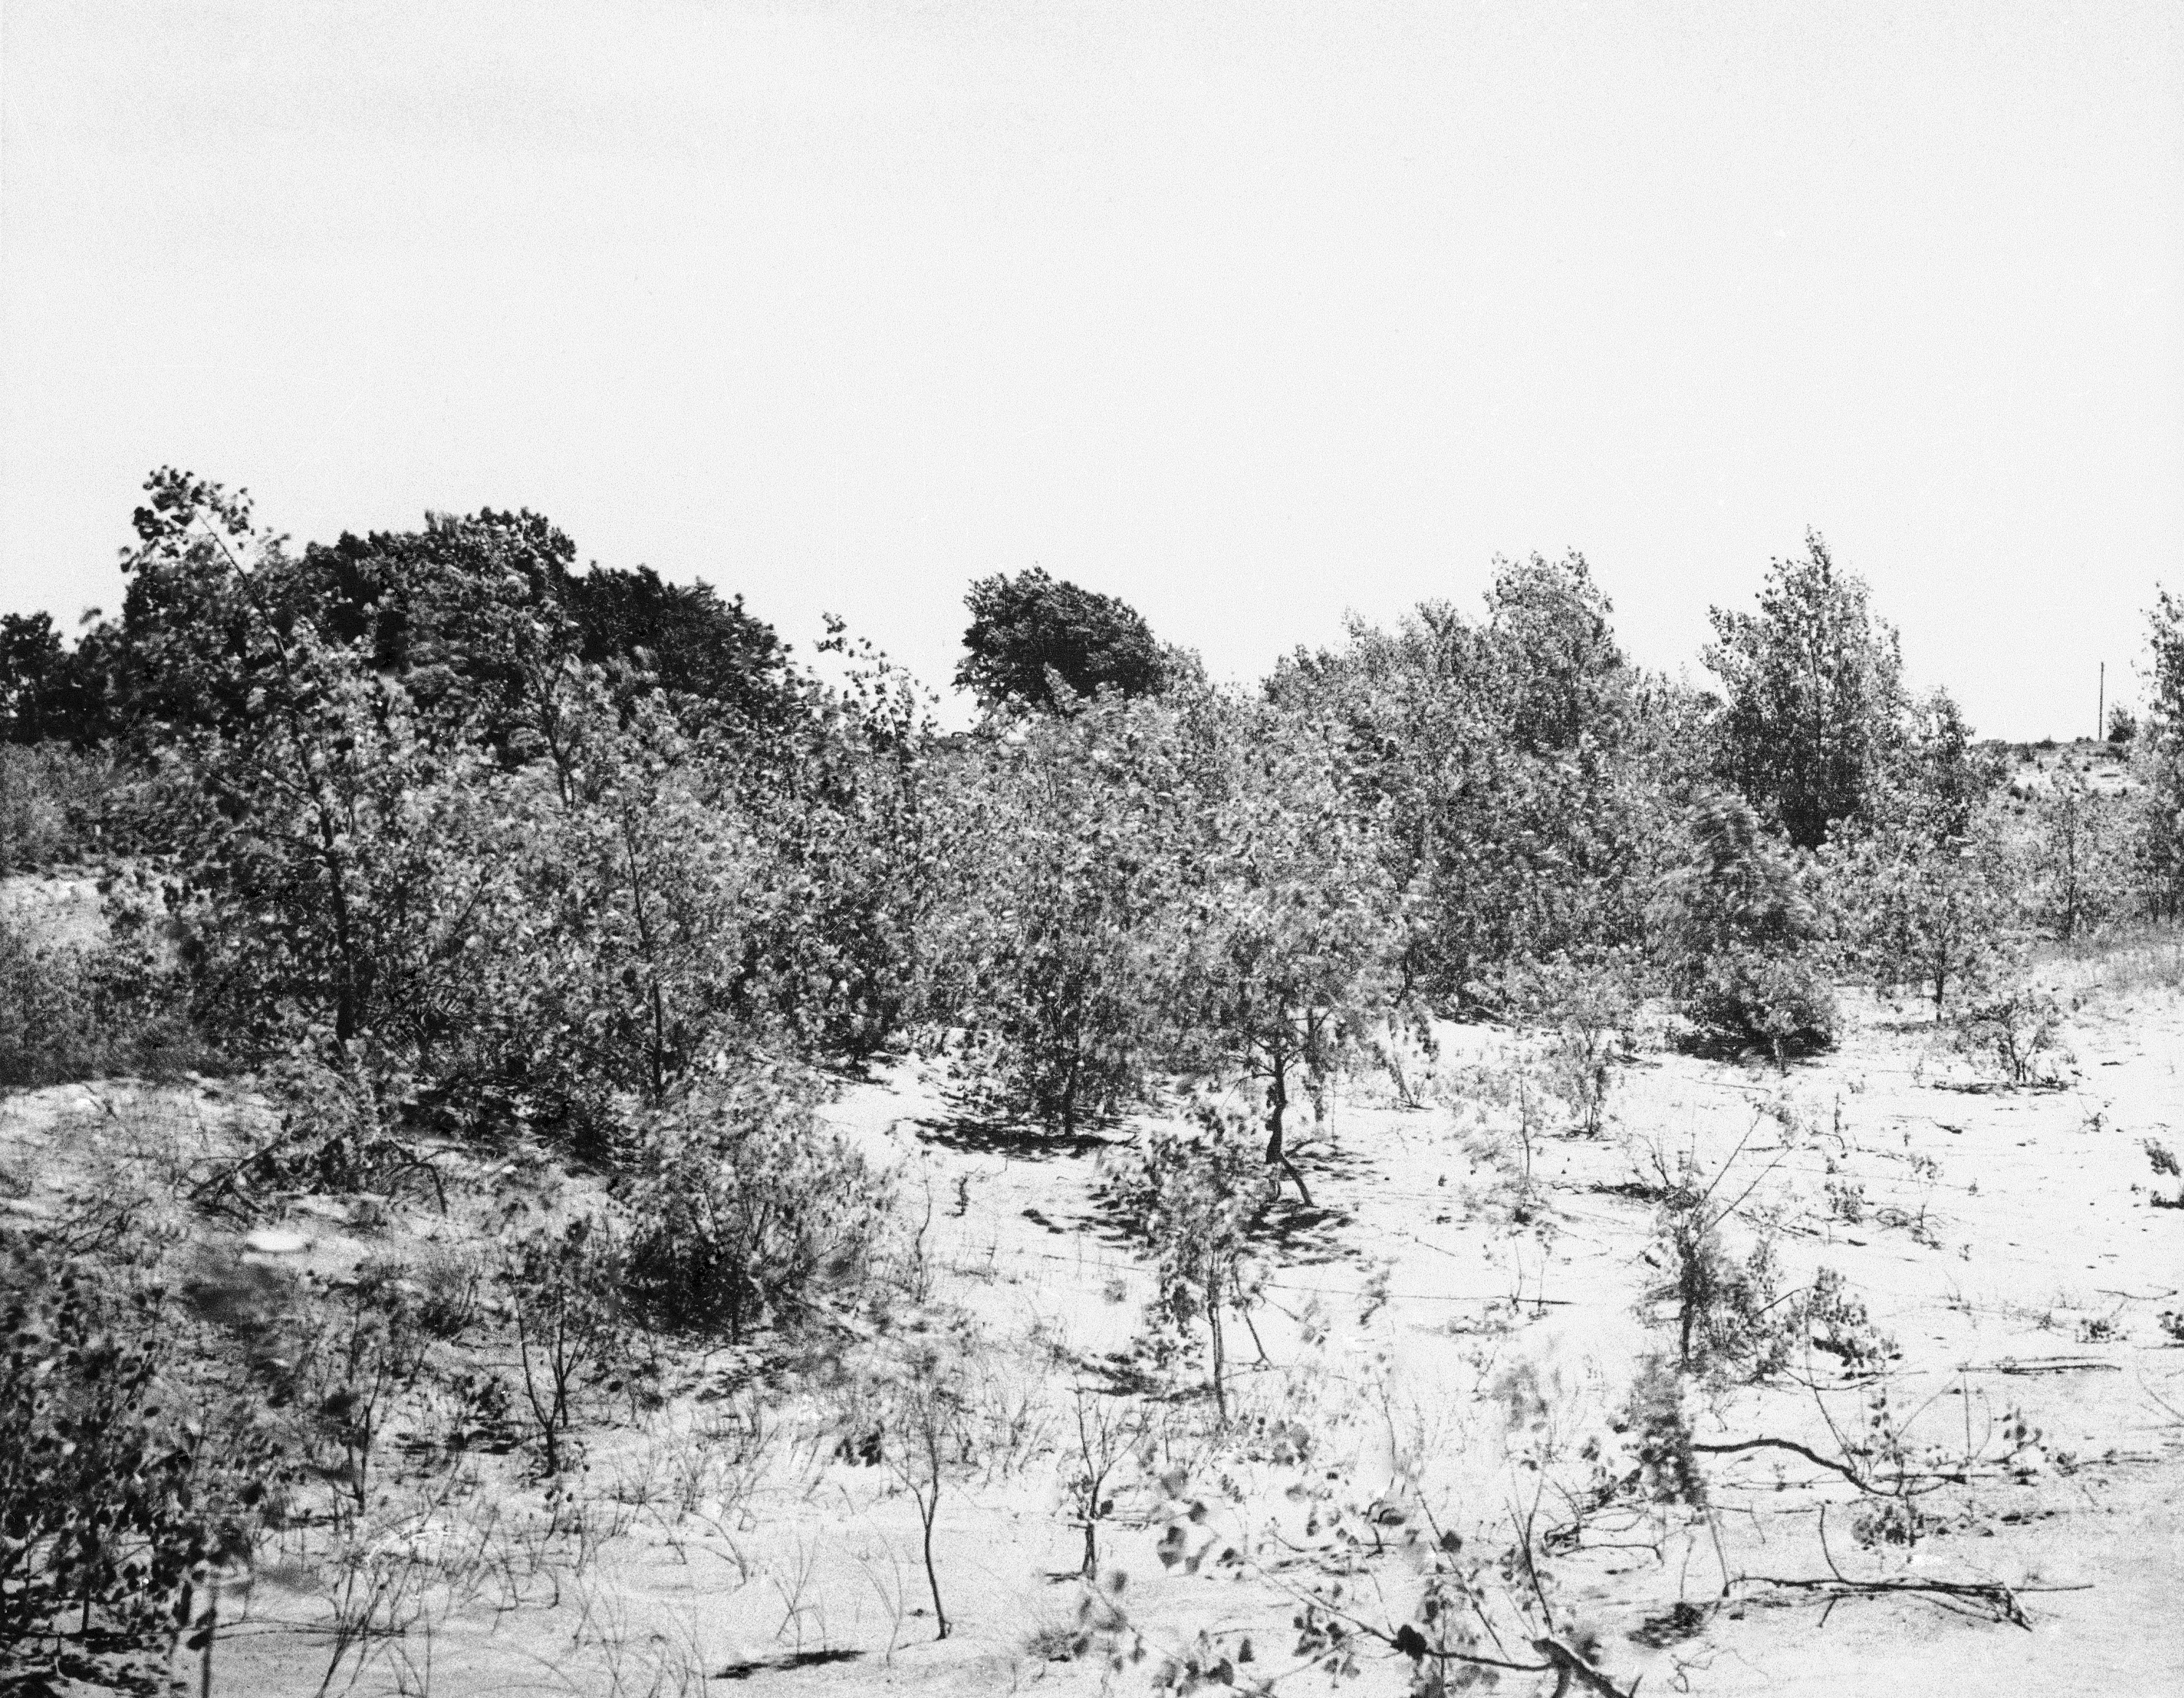 Cottonwood trees in Neligh, Nebraska, 1939. The trees were planted in 1938 and patches of weeds and grass are coming up and gradually improving the parched land. (AP Photo)